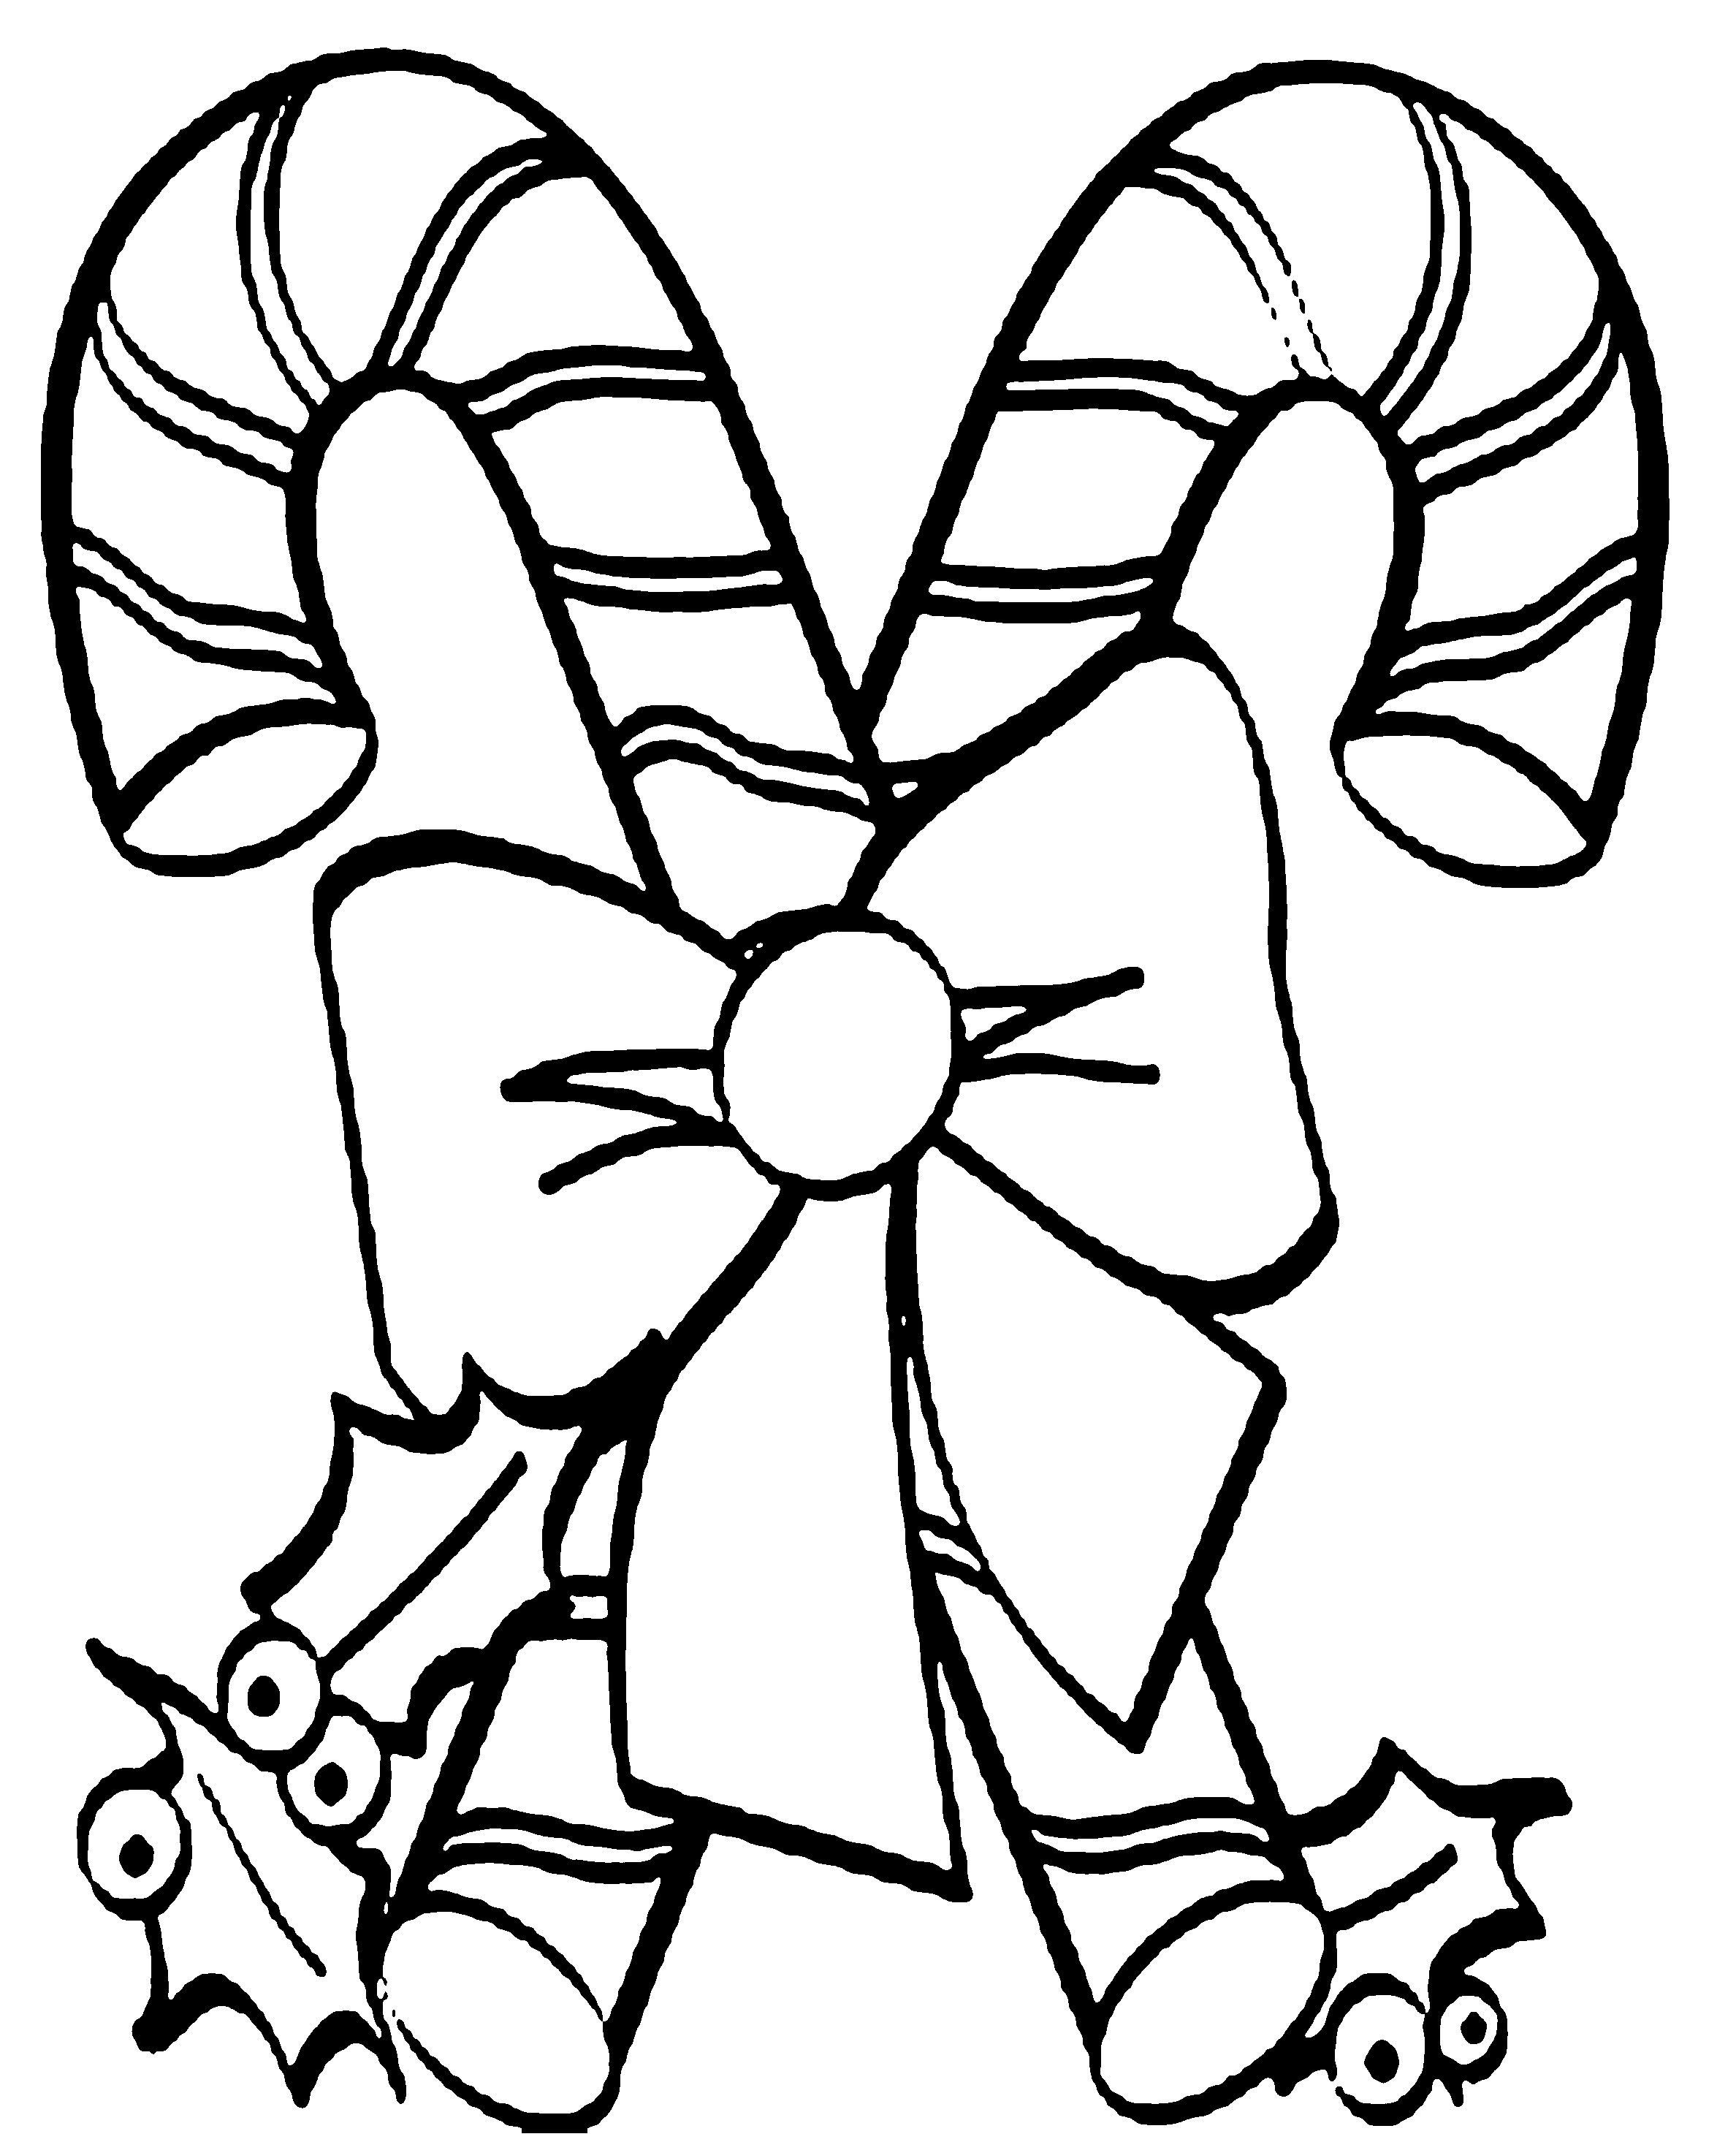 Candy Canes Coloring Pages  15 candy cane coloring pages printable Print Color Craft